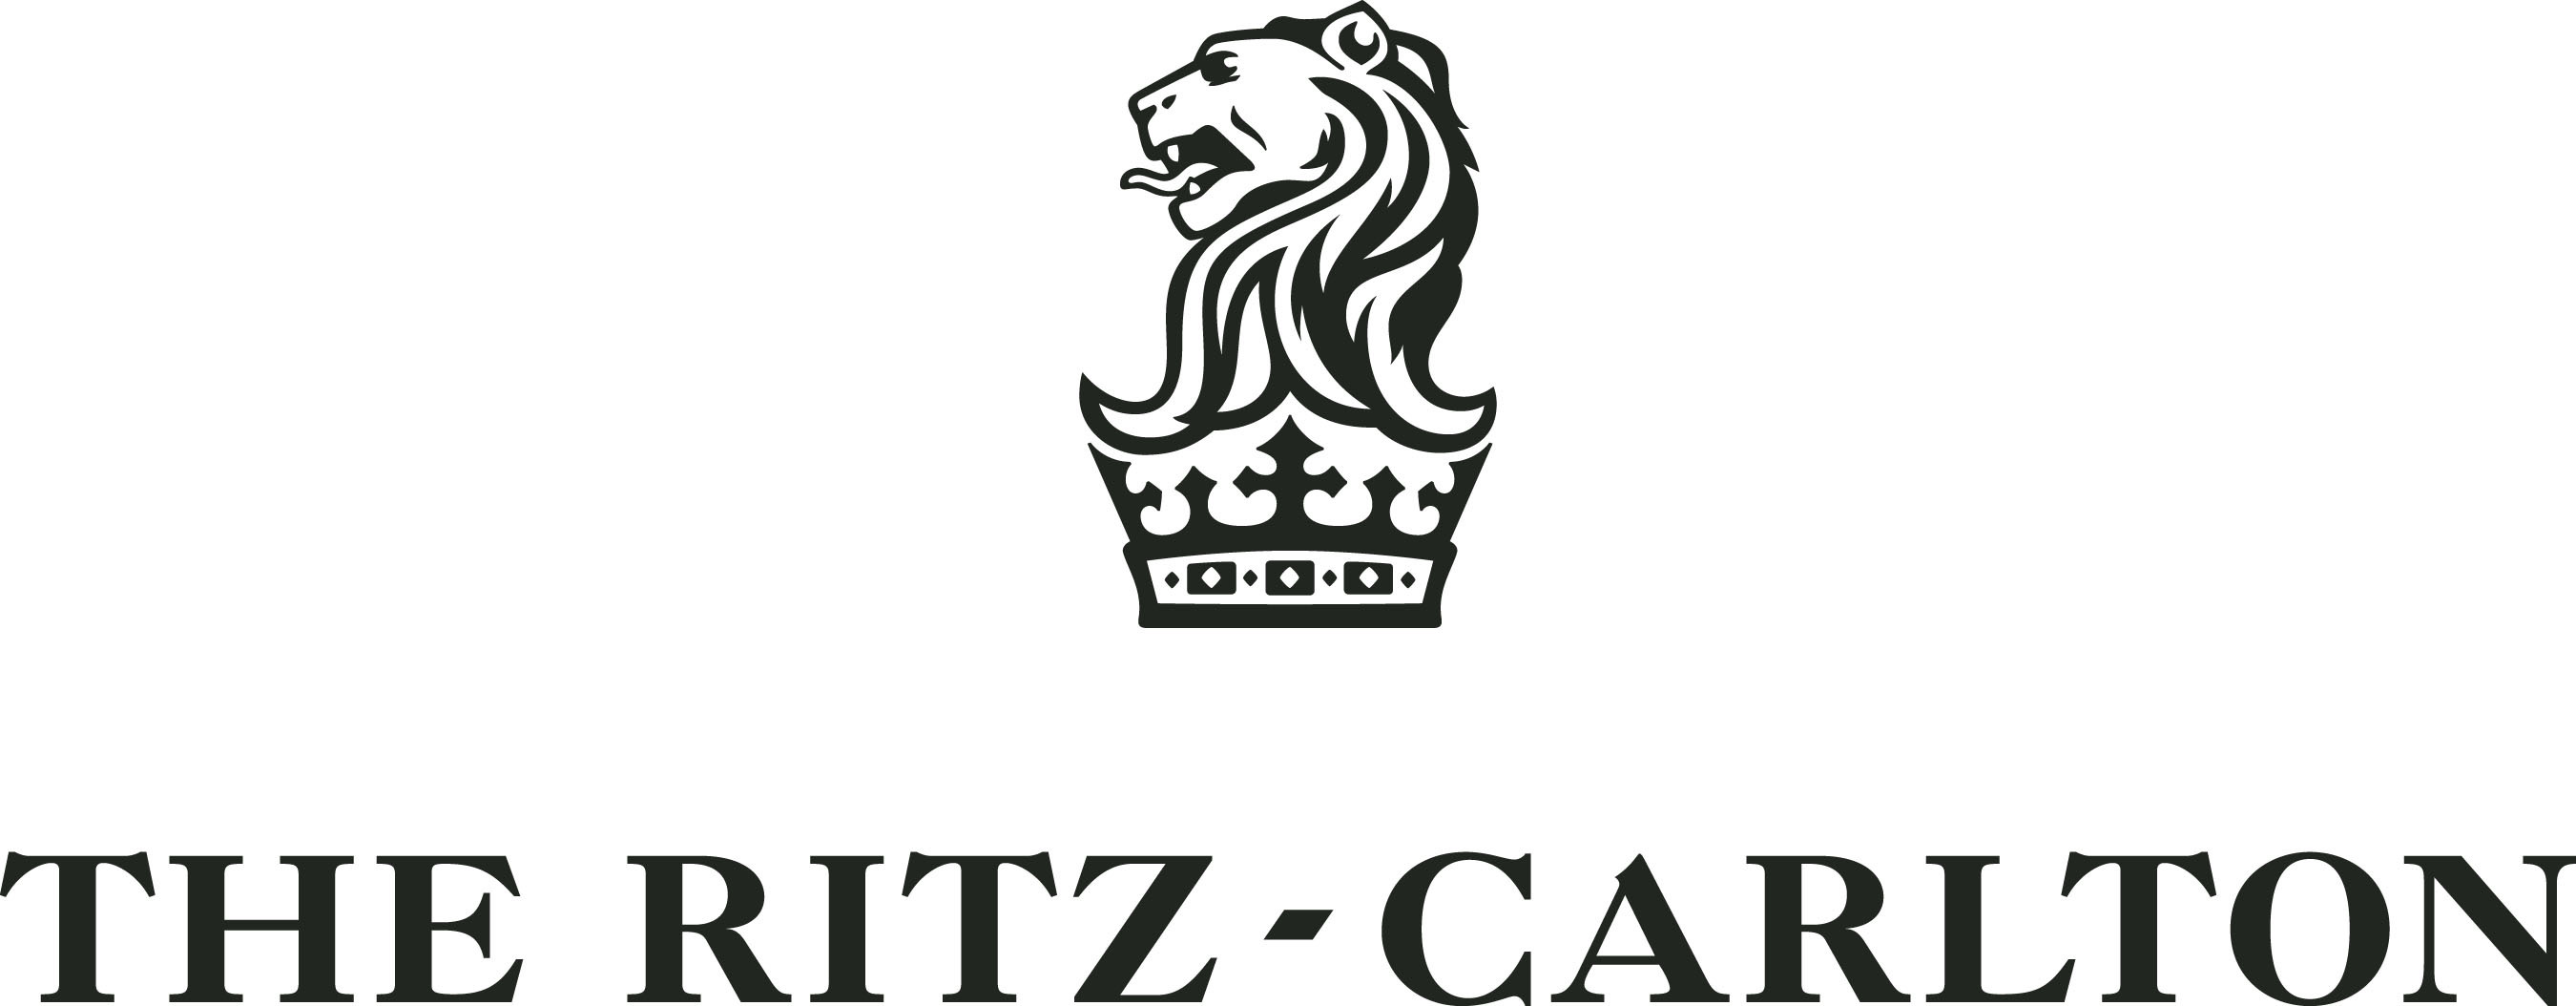 Hotels In Chevy Chase Md The Ritz-Carlton Debuts First Social Film Series; A Ritz ...